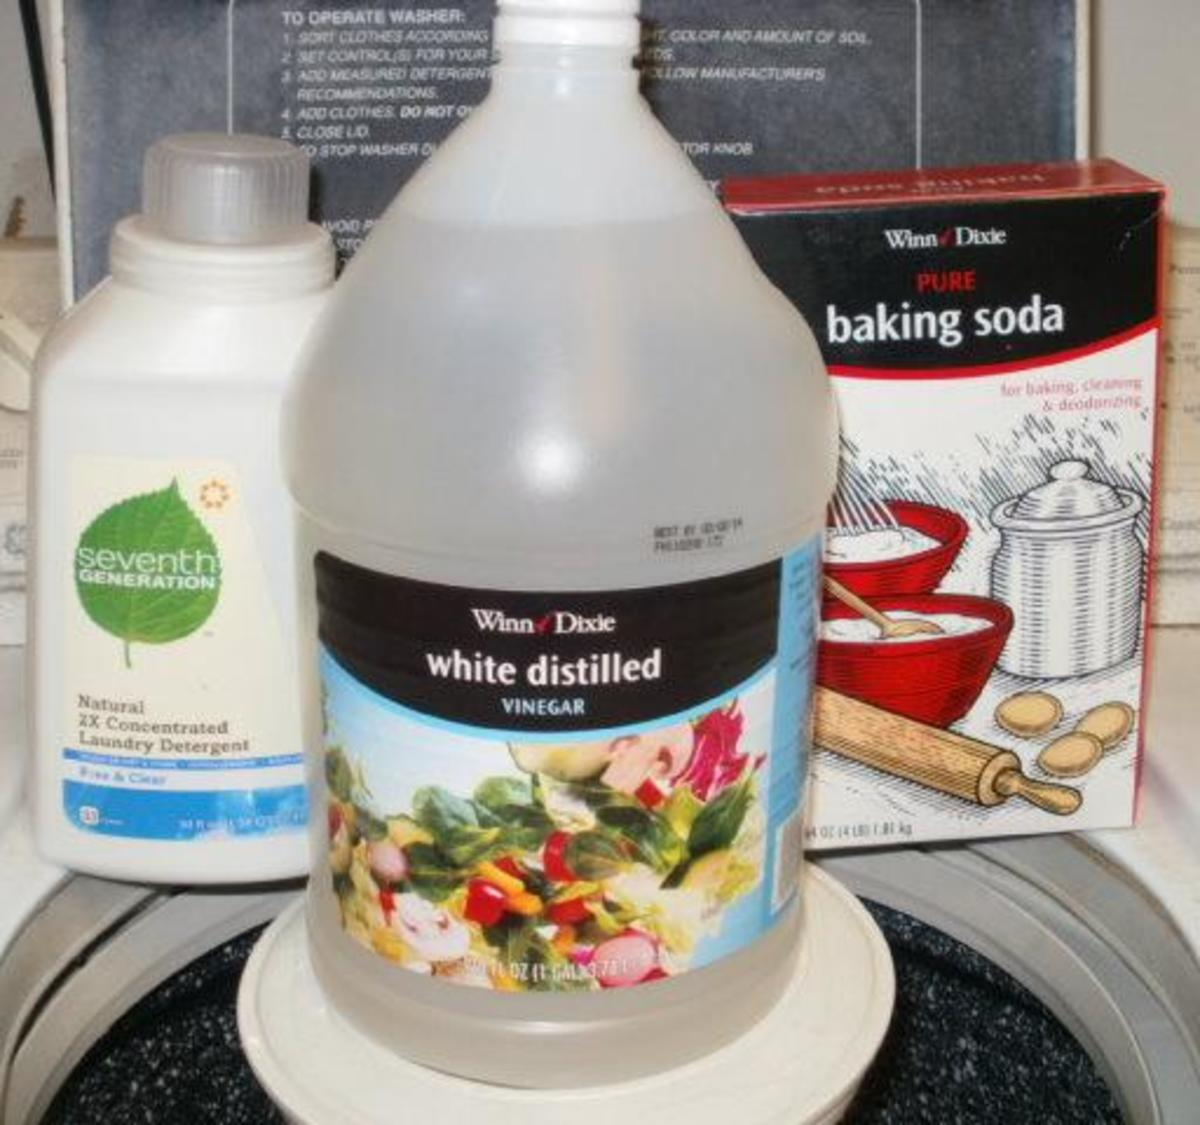 Household Uses and Cleaning Tips for Baking Soda and Vinegar